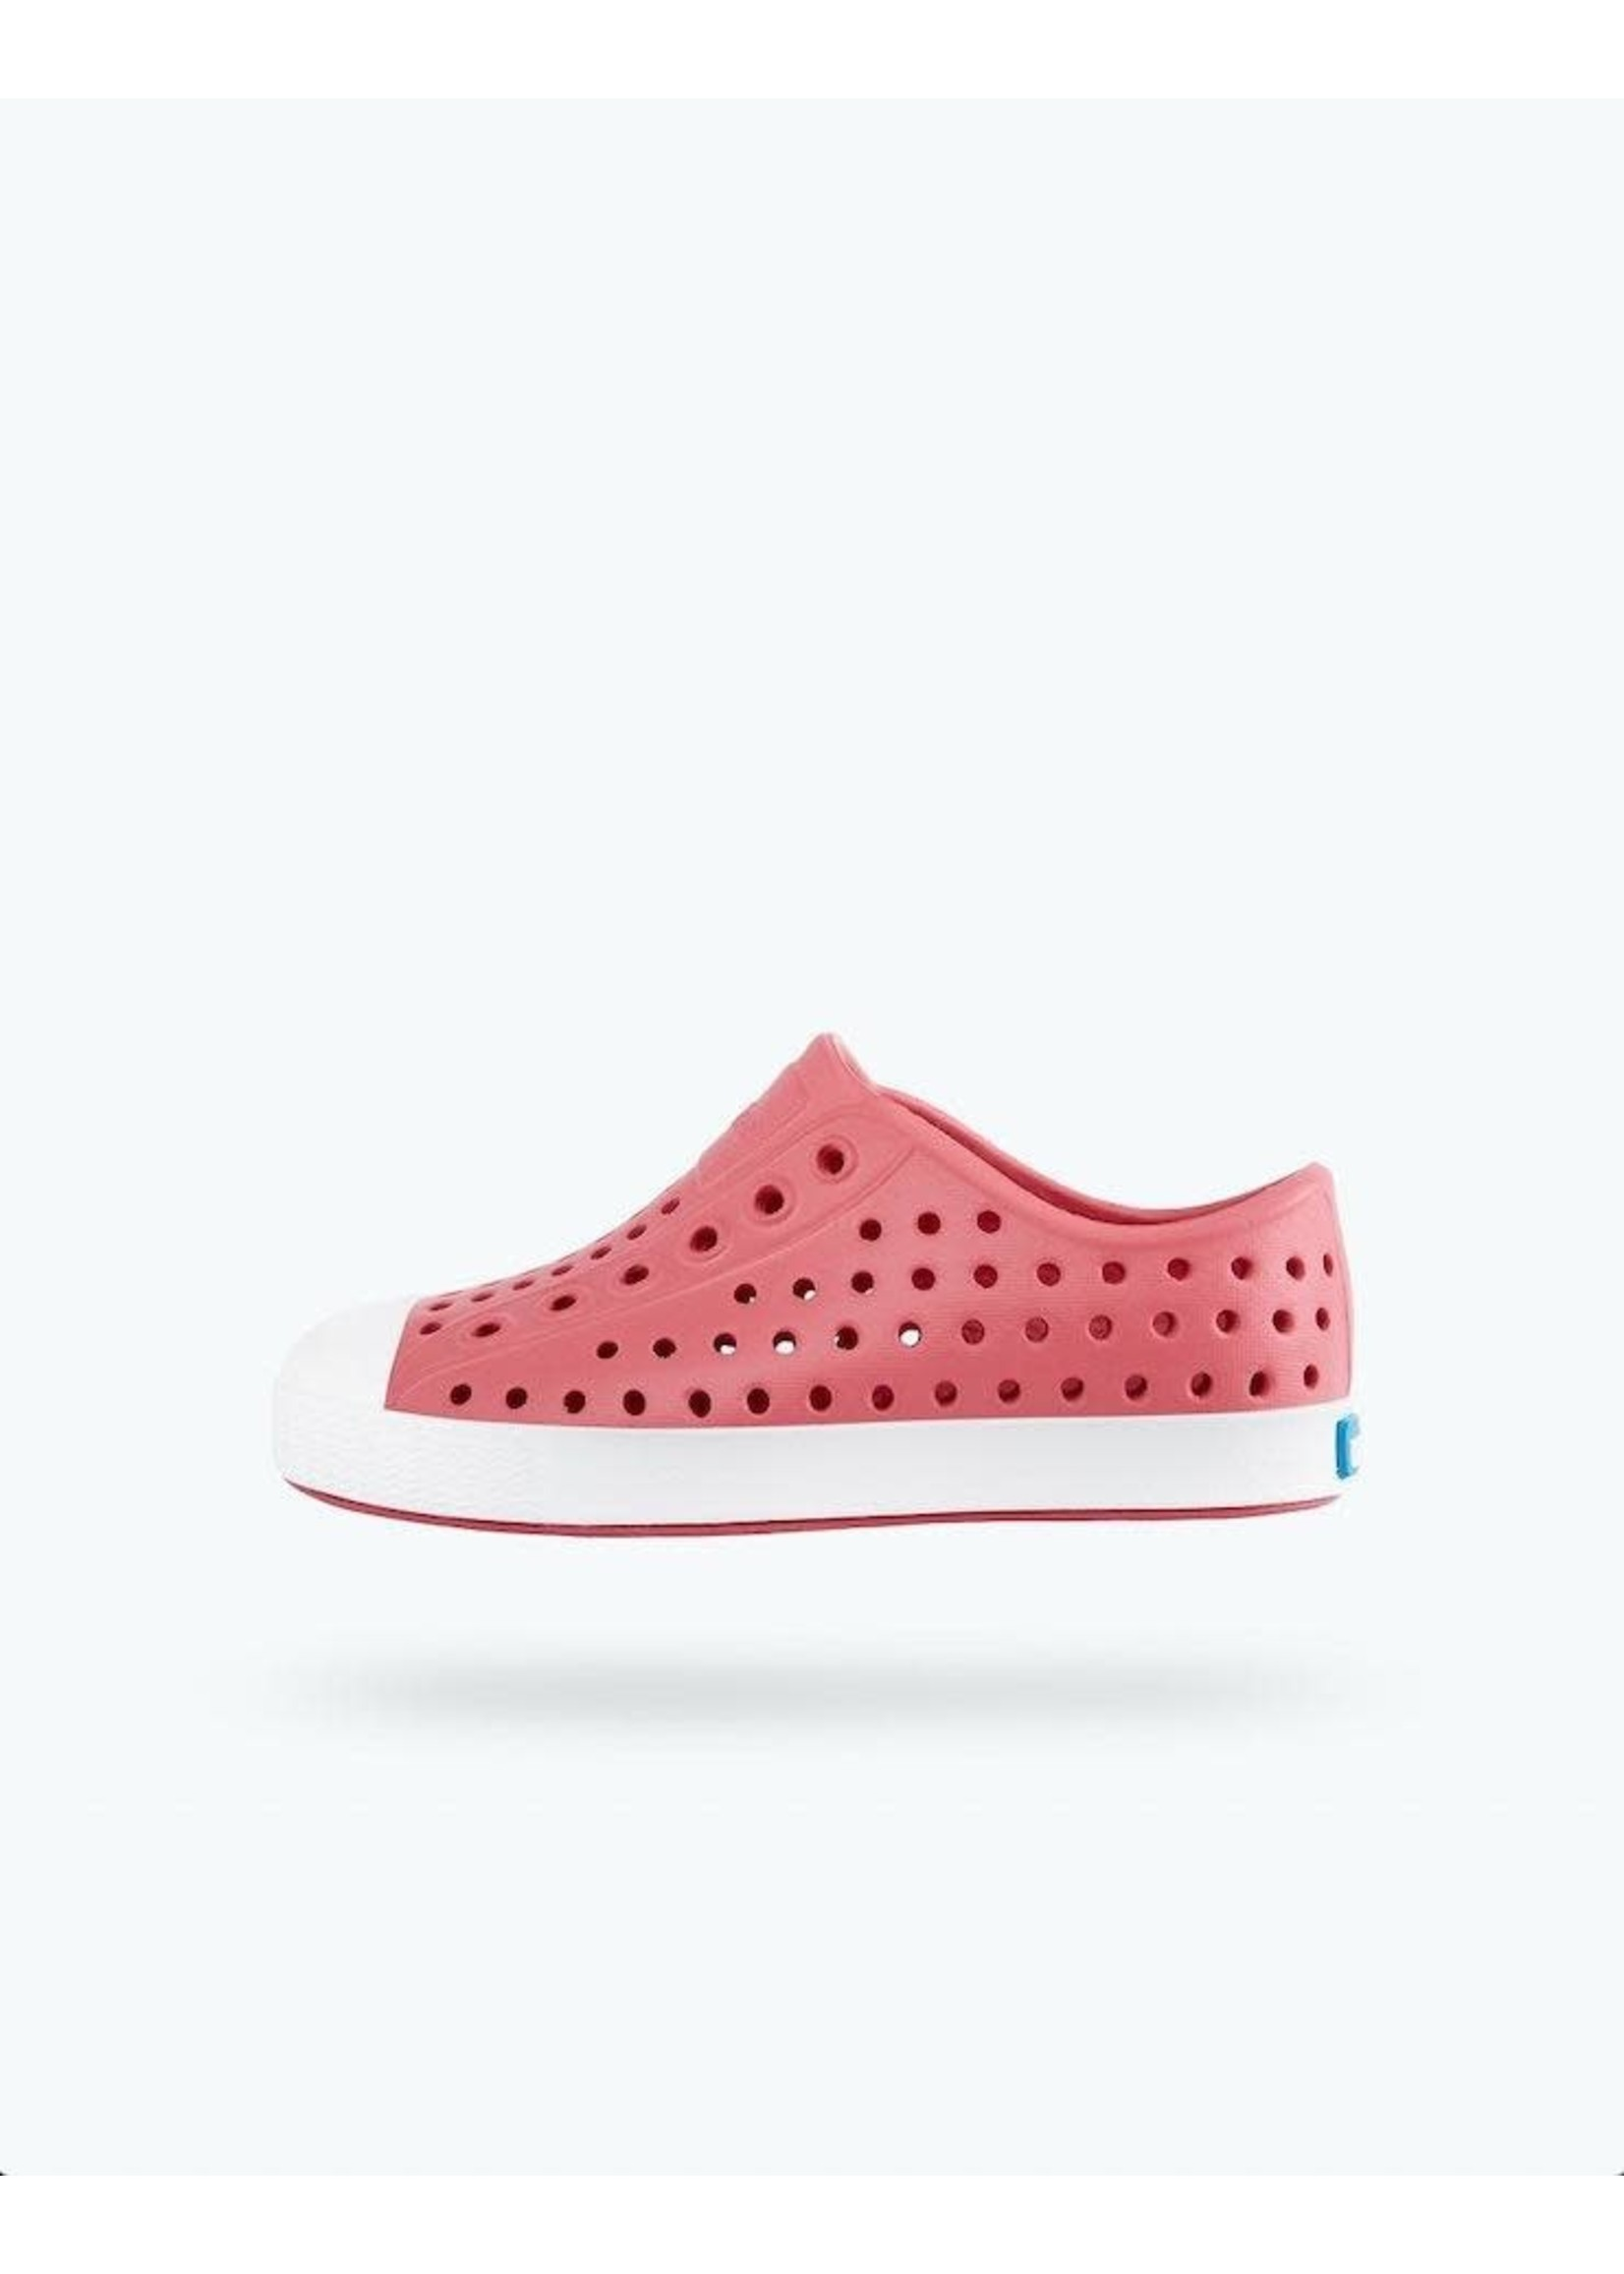 Native Shoes Native Shoes, Jefferson Child in Clover Pink/ Shell White